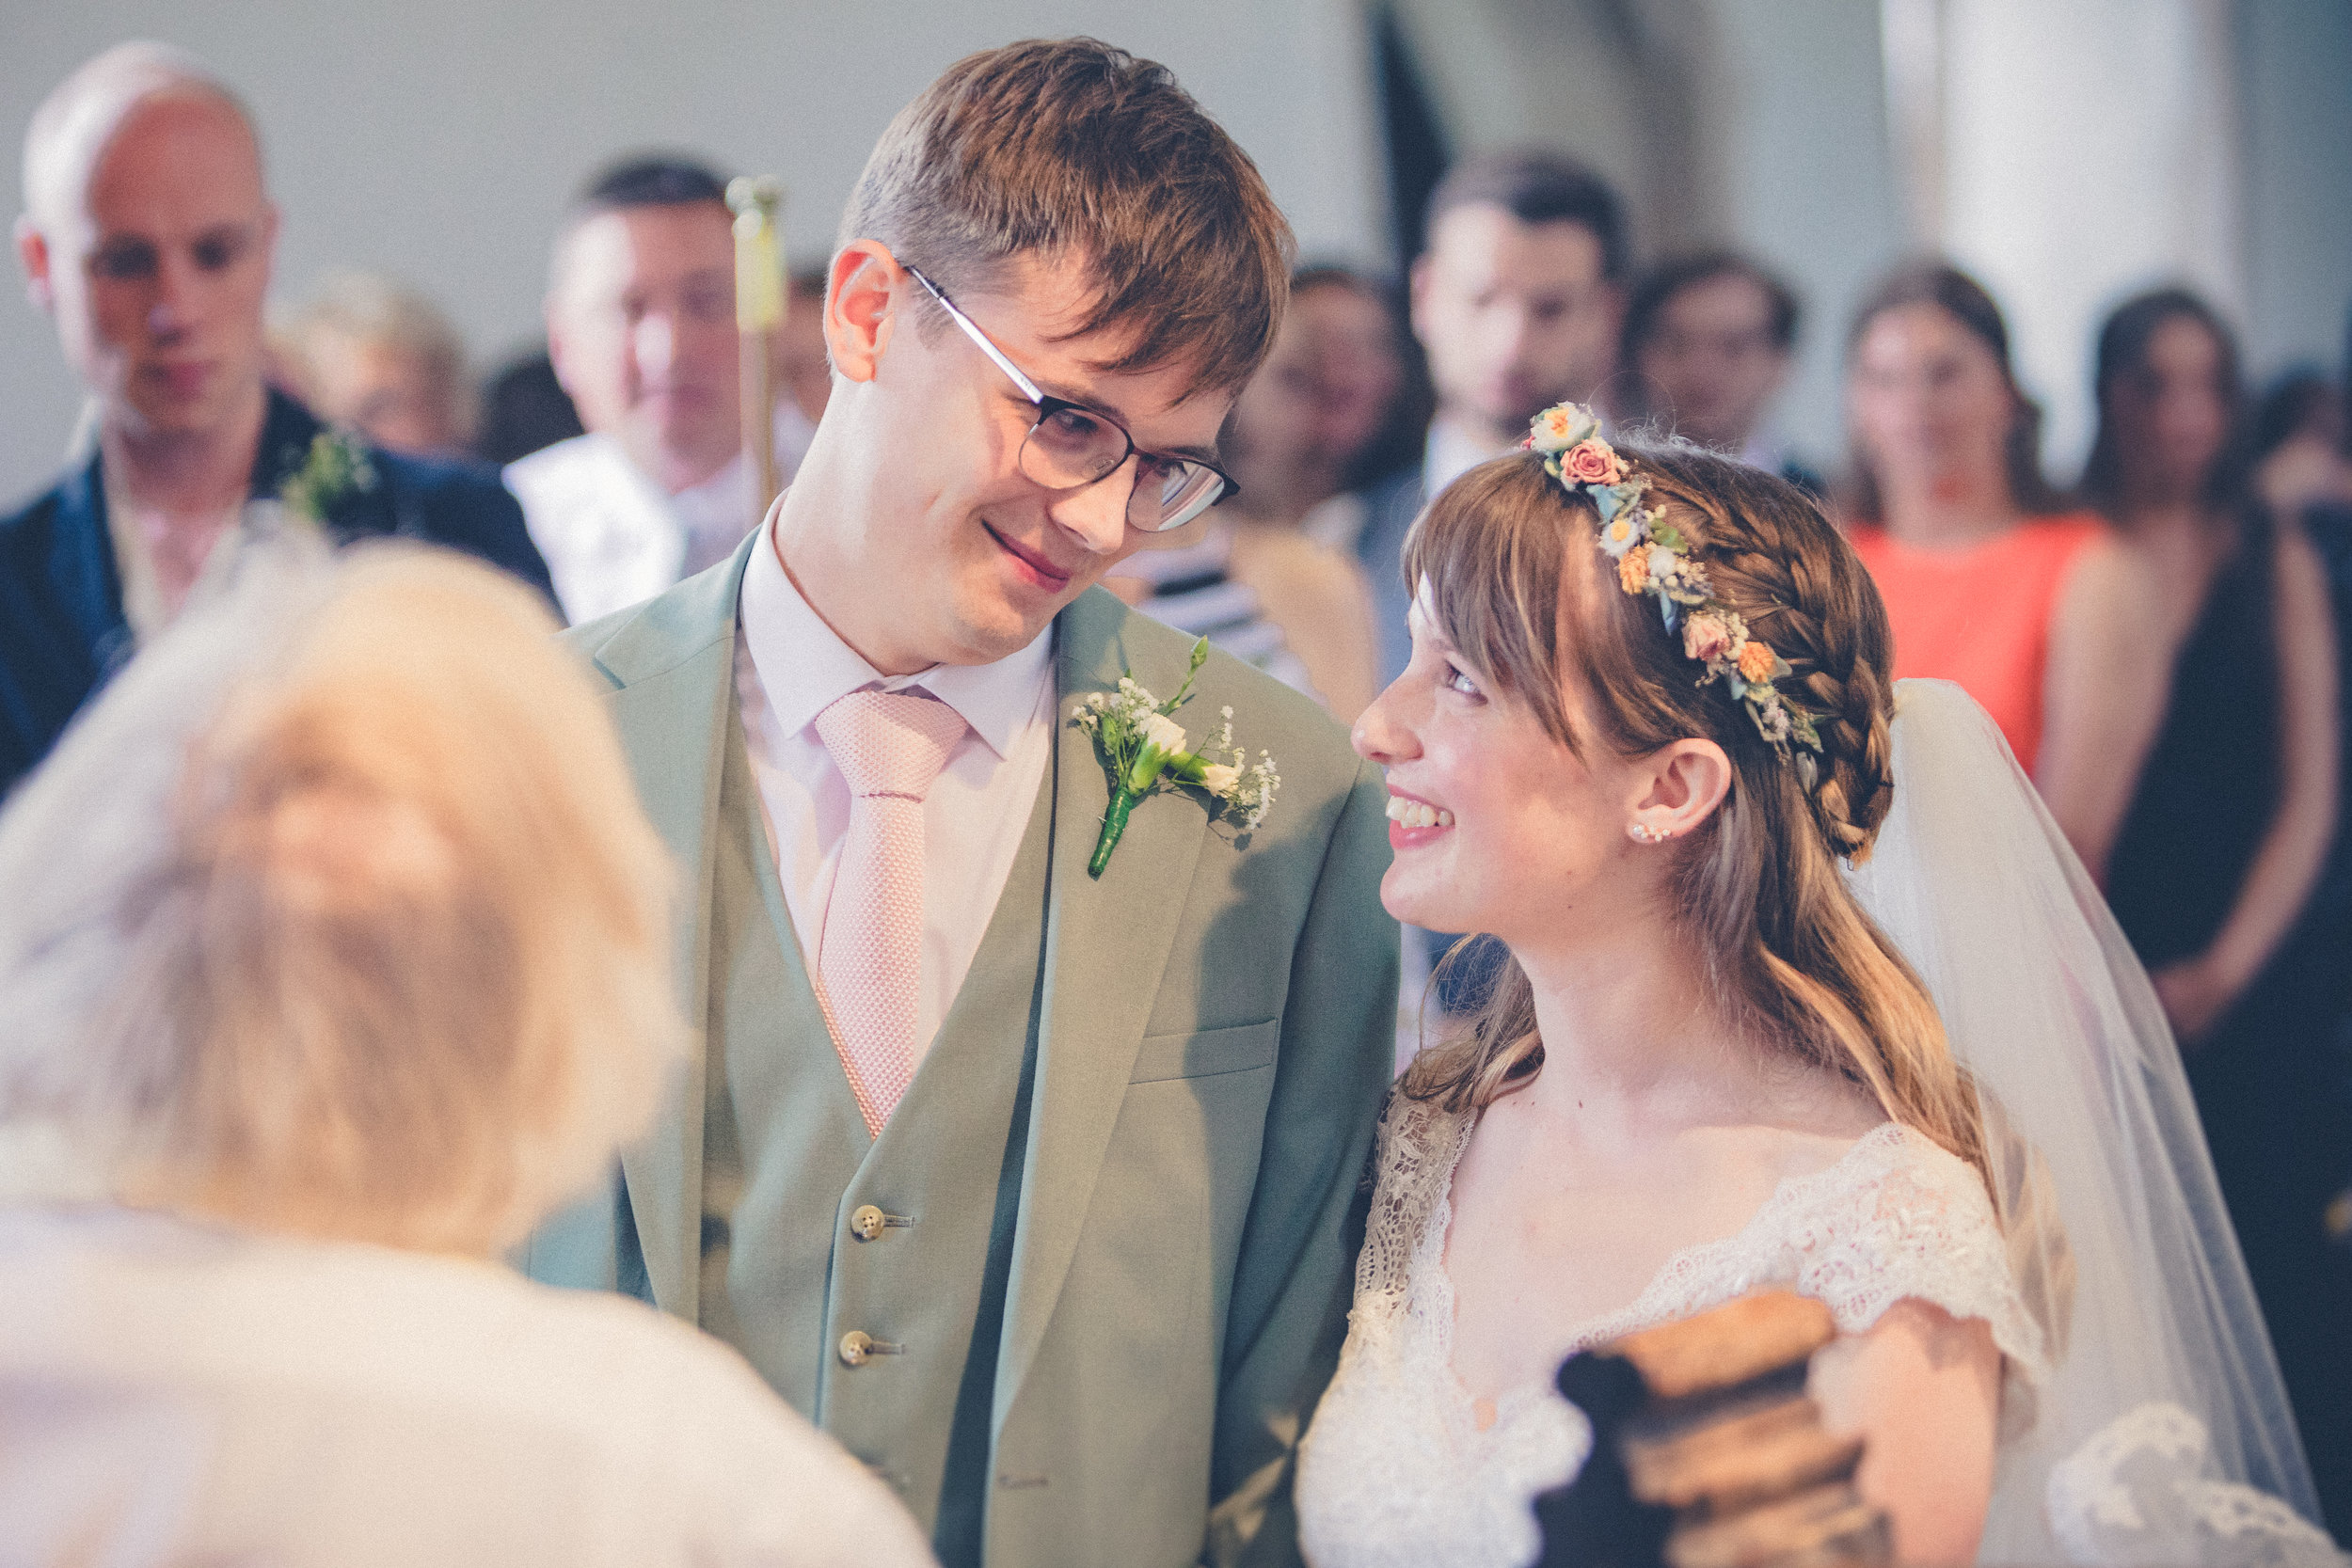 """Luke photographed my wedding this year and I am really happy with the photos he took. Luke is professional and considerate and very friendly too!"""